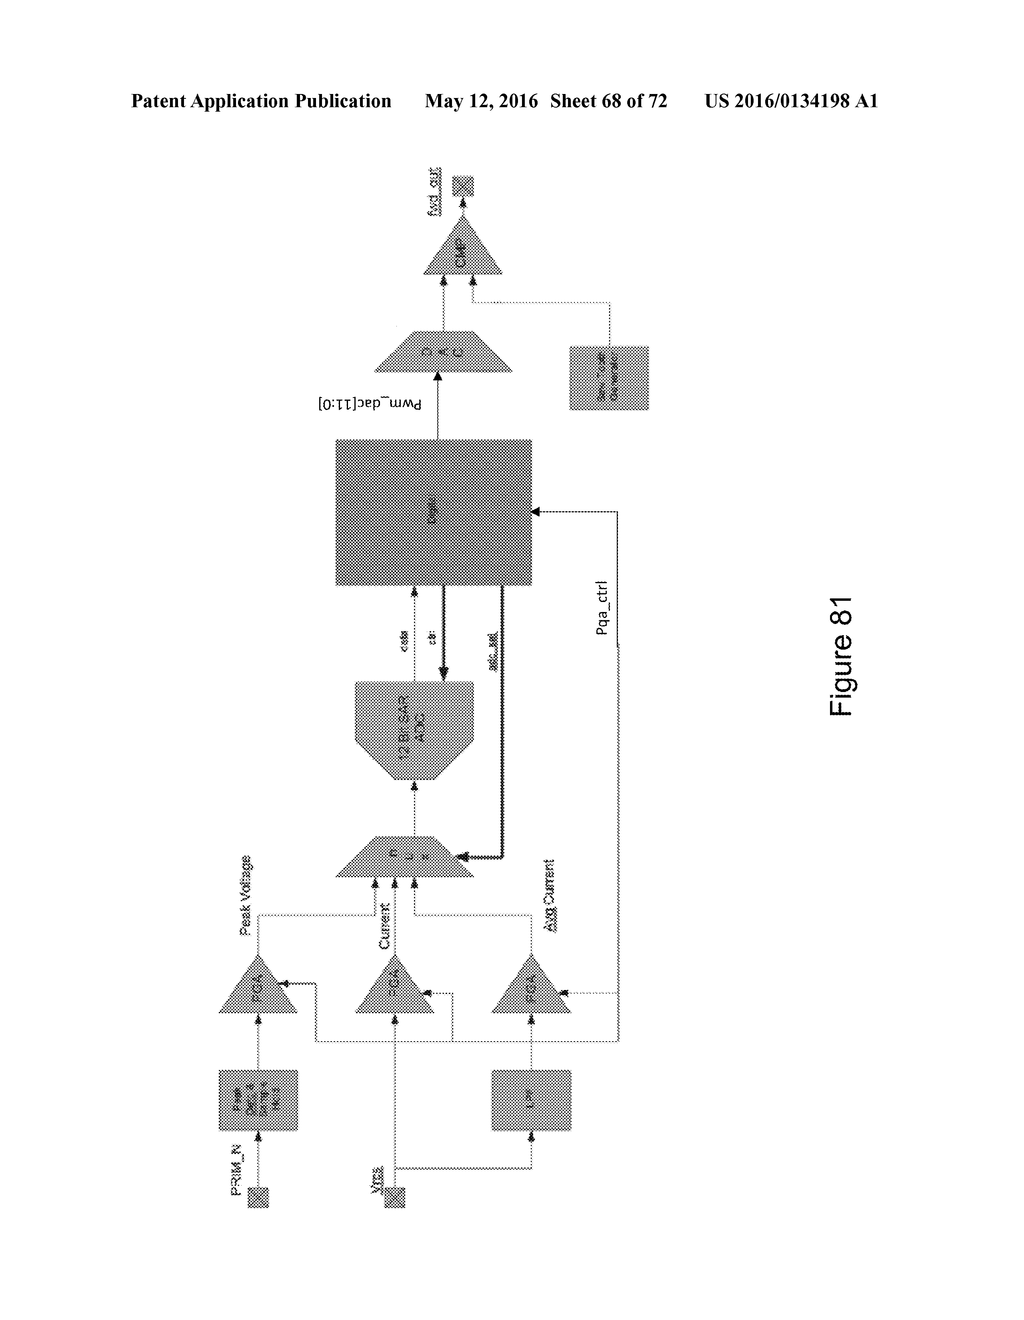 ELECTRICAL CIRCUIT FOR DELIVERING POWER TO CONSUMER ELECTRONIC DEVICES - diagram, schematic, and image 69